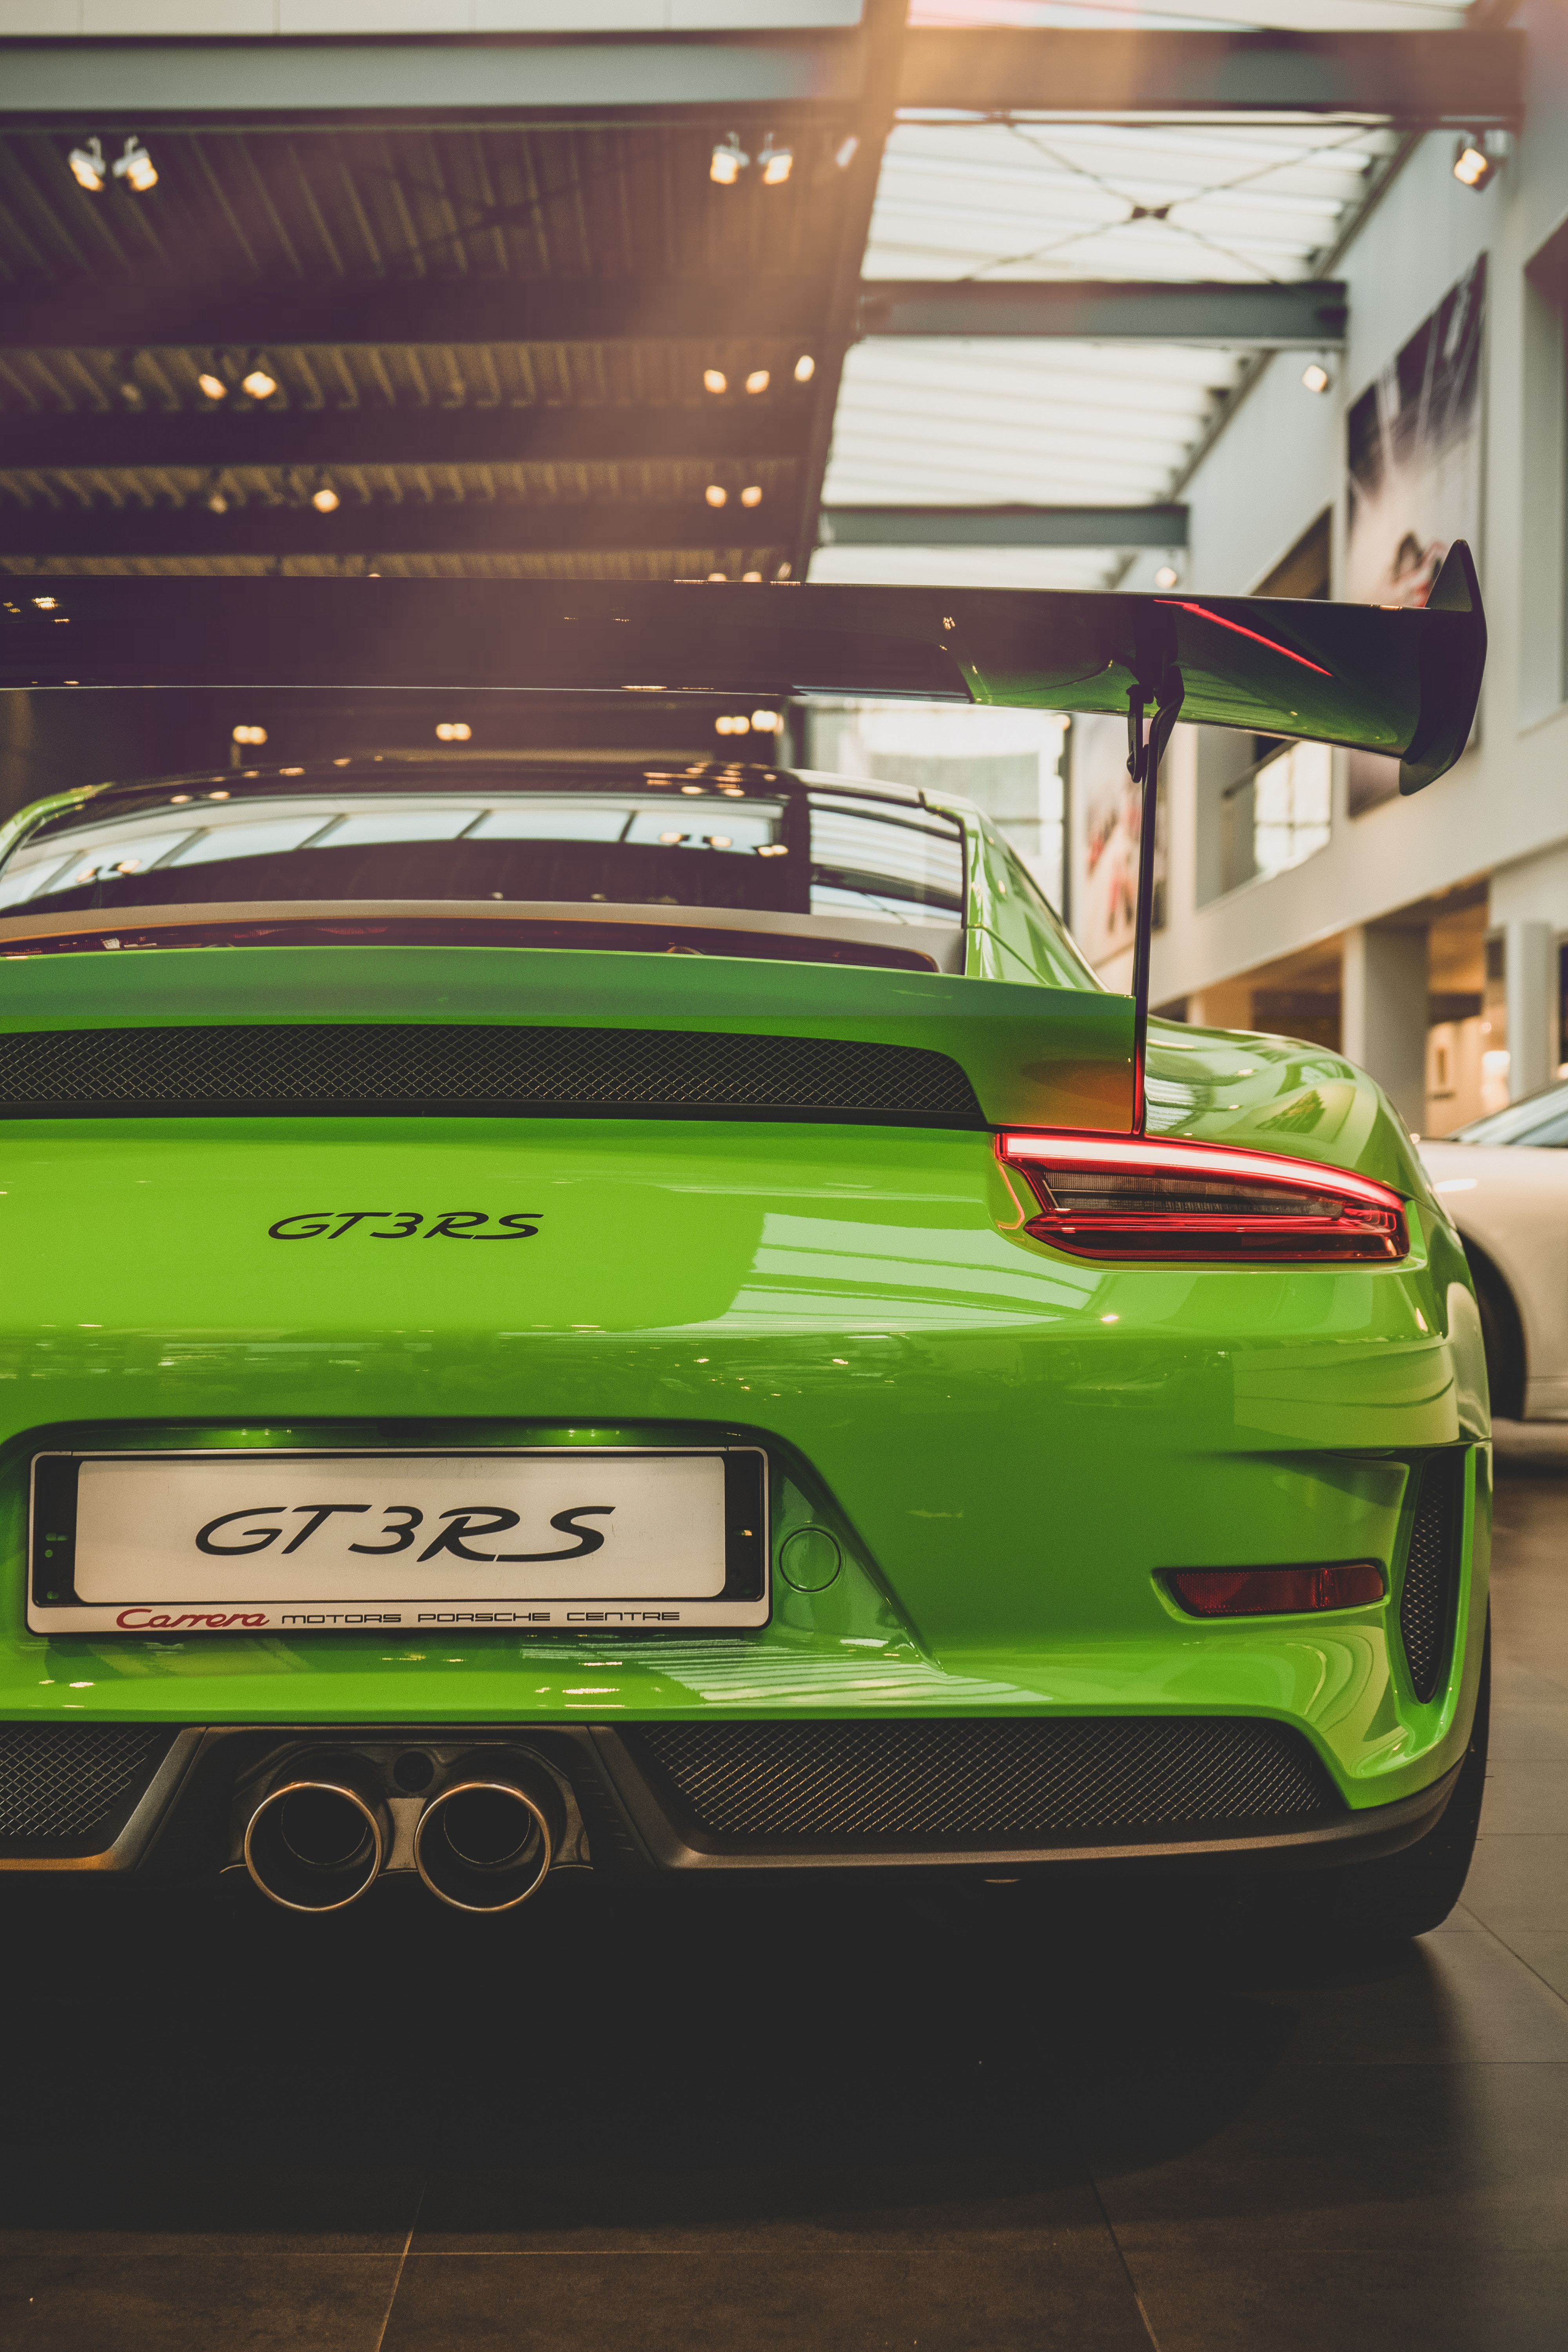 107532 download wallpaper Porsche, Cars, Back View, Rear View, Porsche 911, Porsche 911 Gt3 Rs screensavers and pictures for free